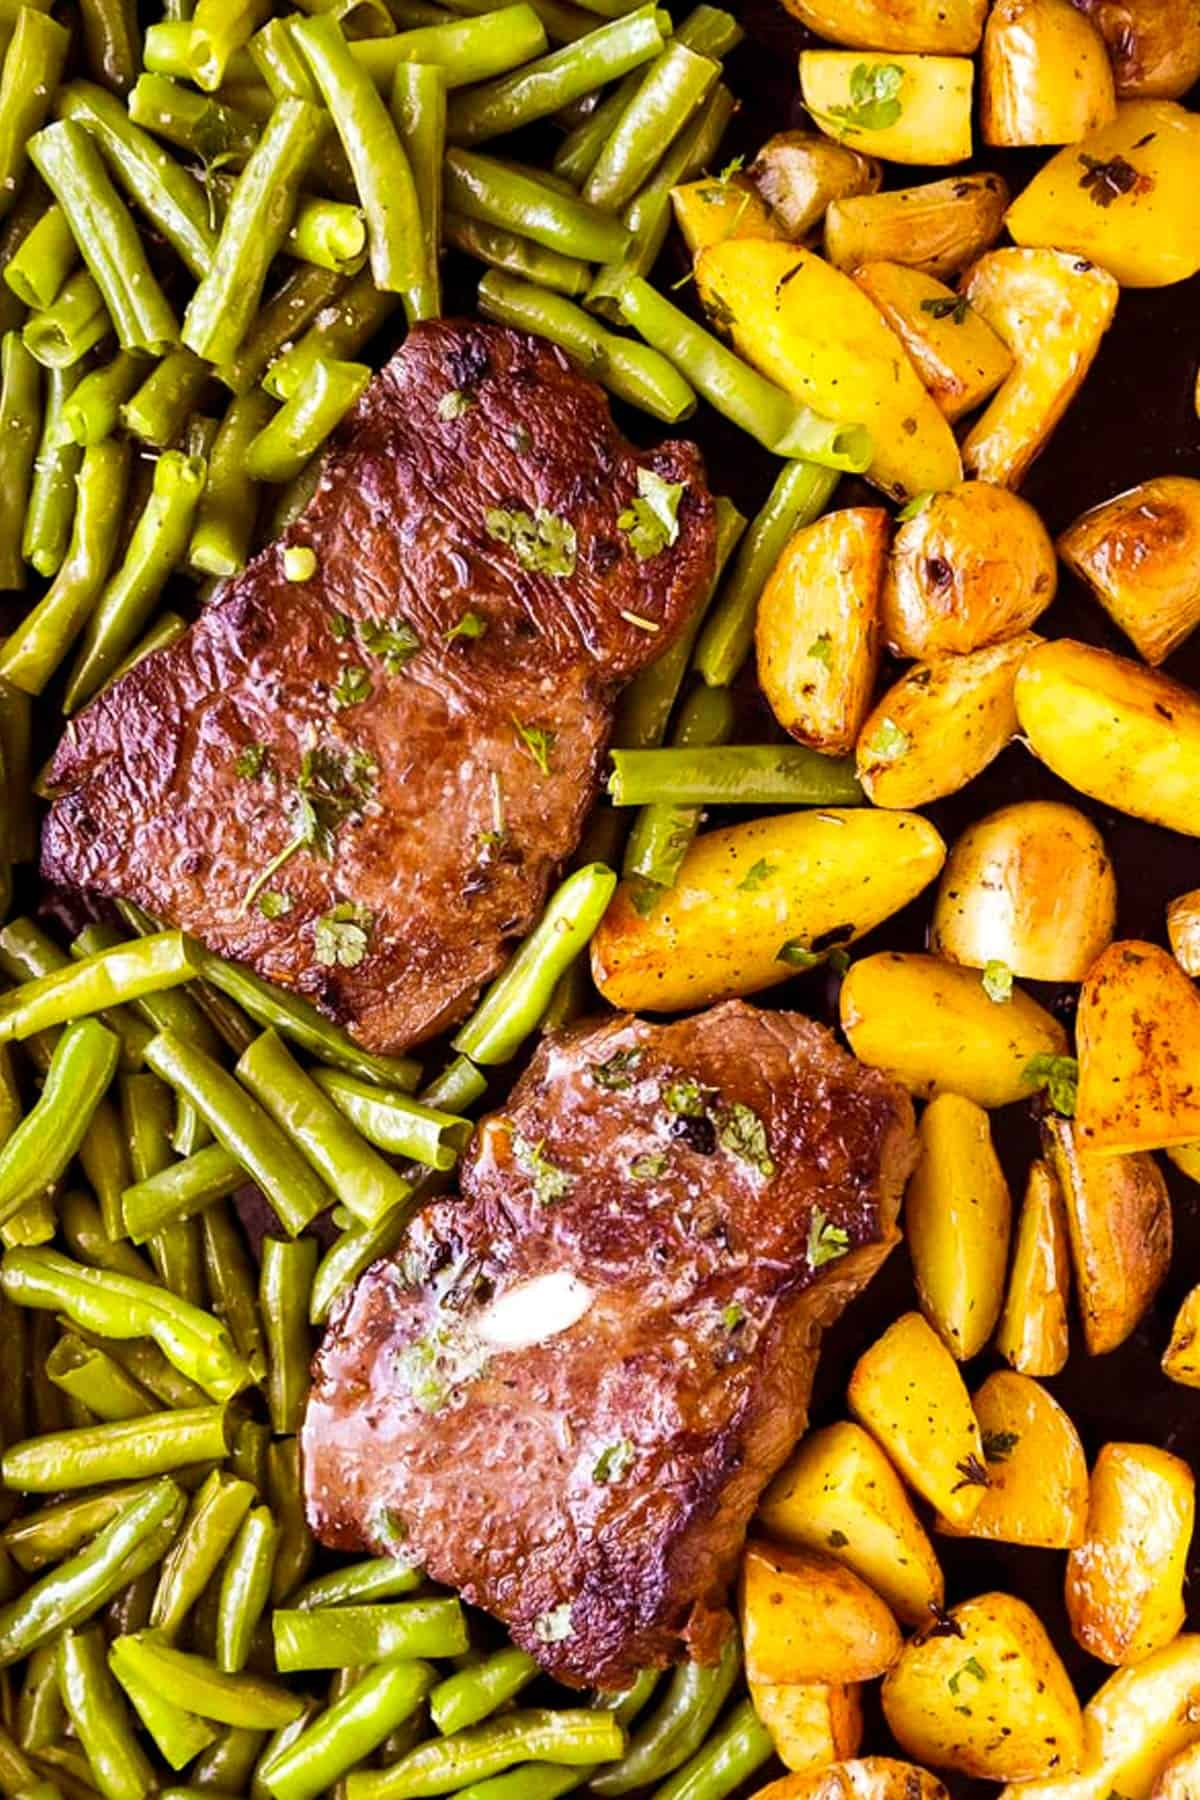 sheet pan with steaks, green beans and potatoes